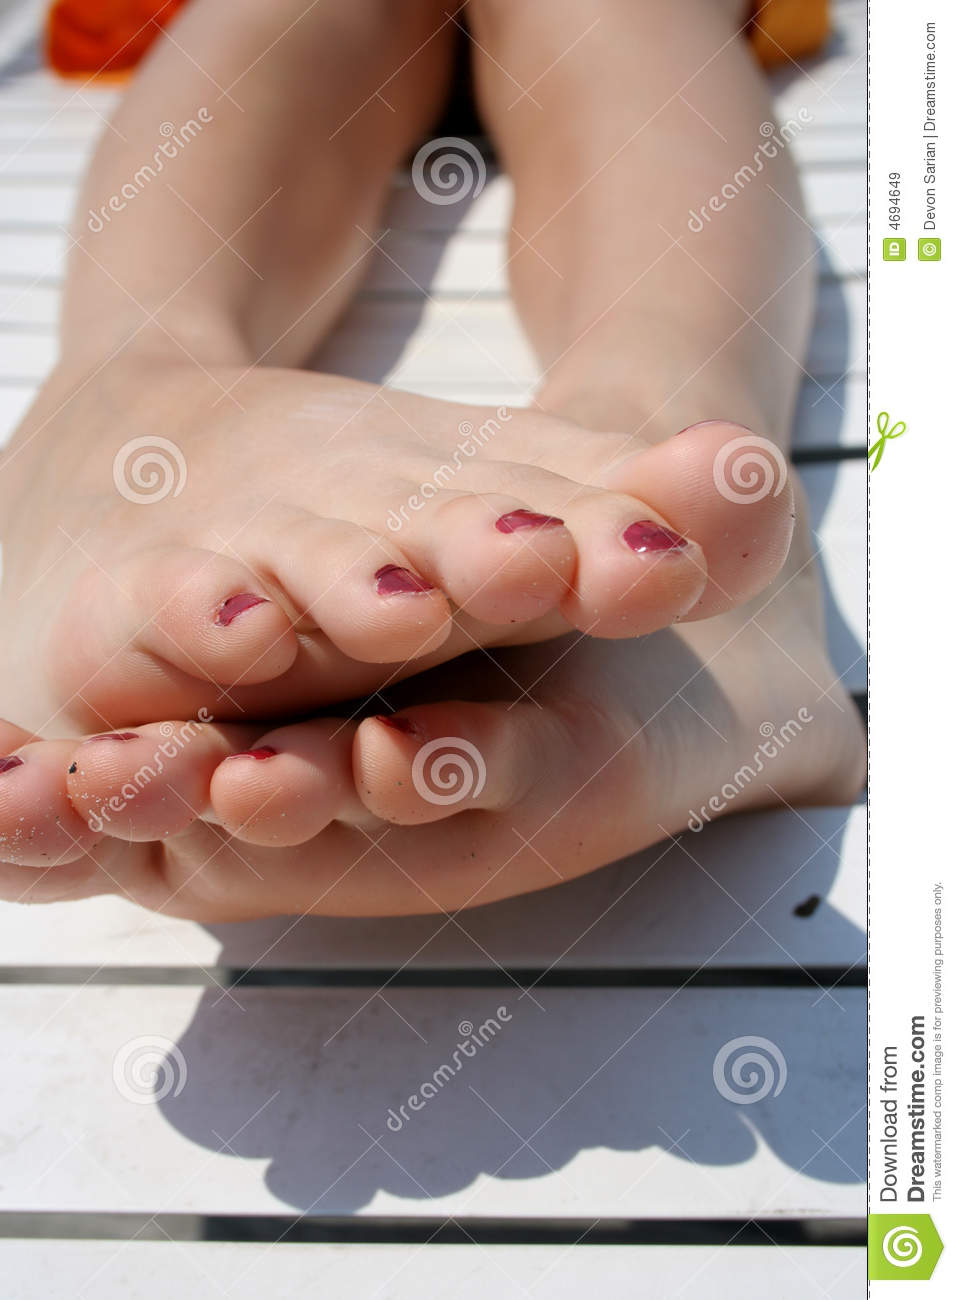 Teenager Feet Royalty Free Stock Images - Image 4694649-5586